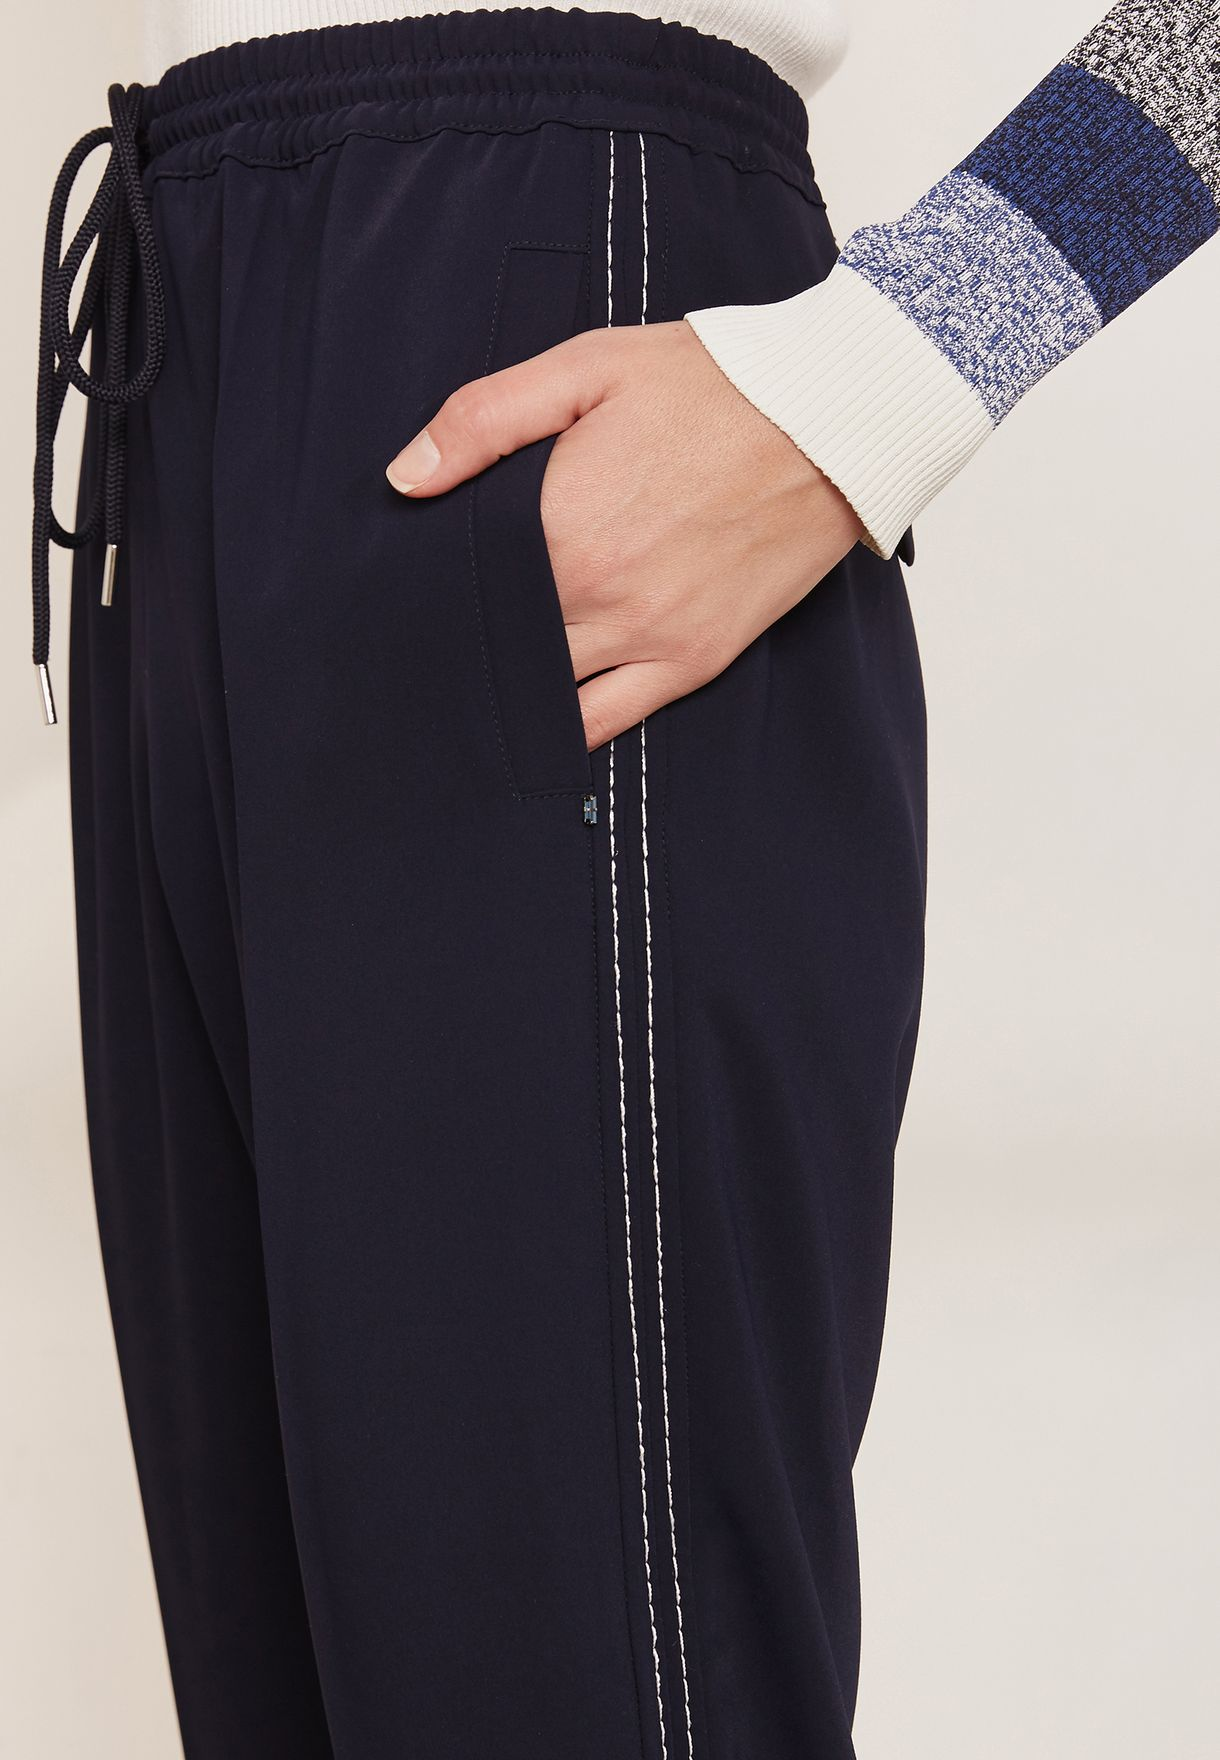 Buy Sportmax Code Navy Aire High Waist Ankle Grazer Pants For Women, Uae Sp737at38poj